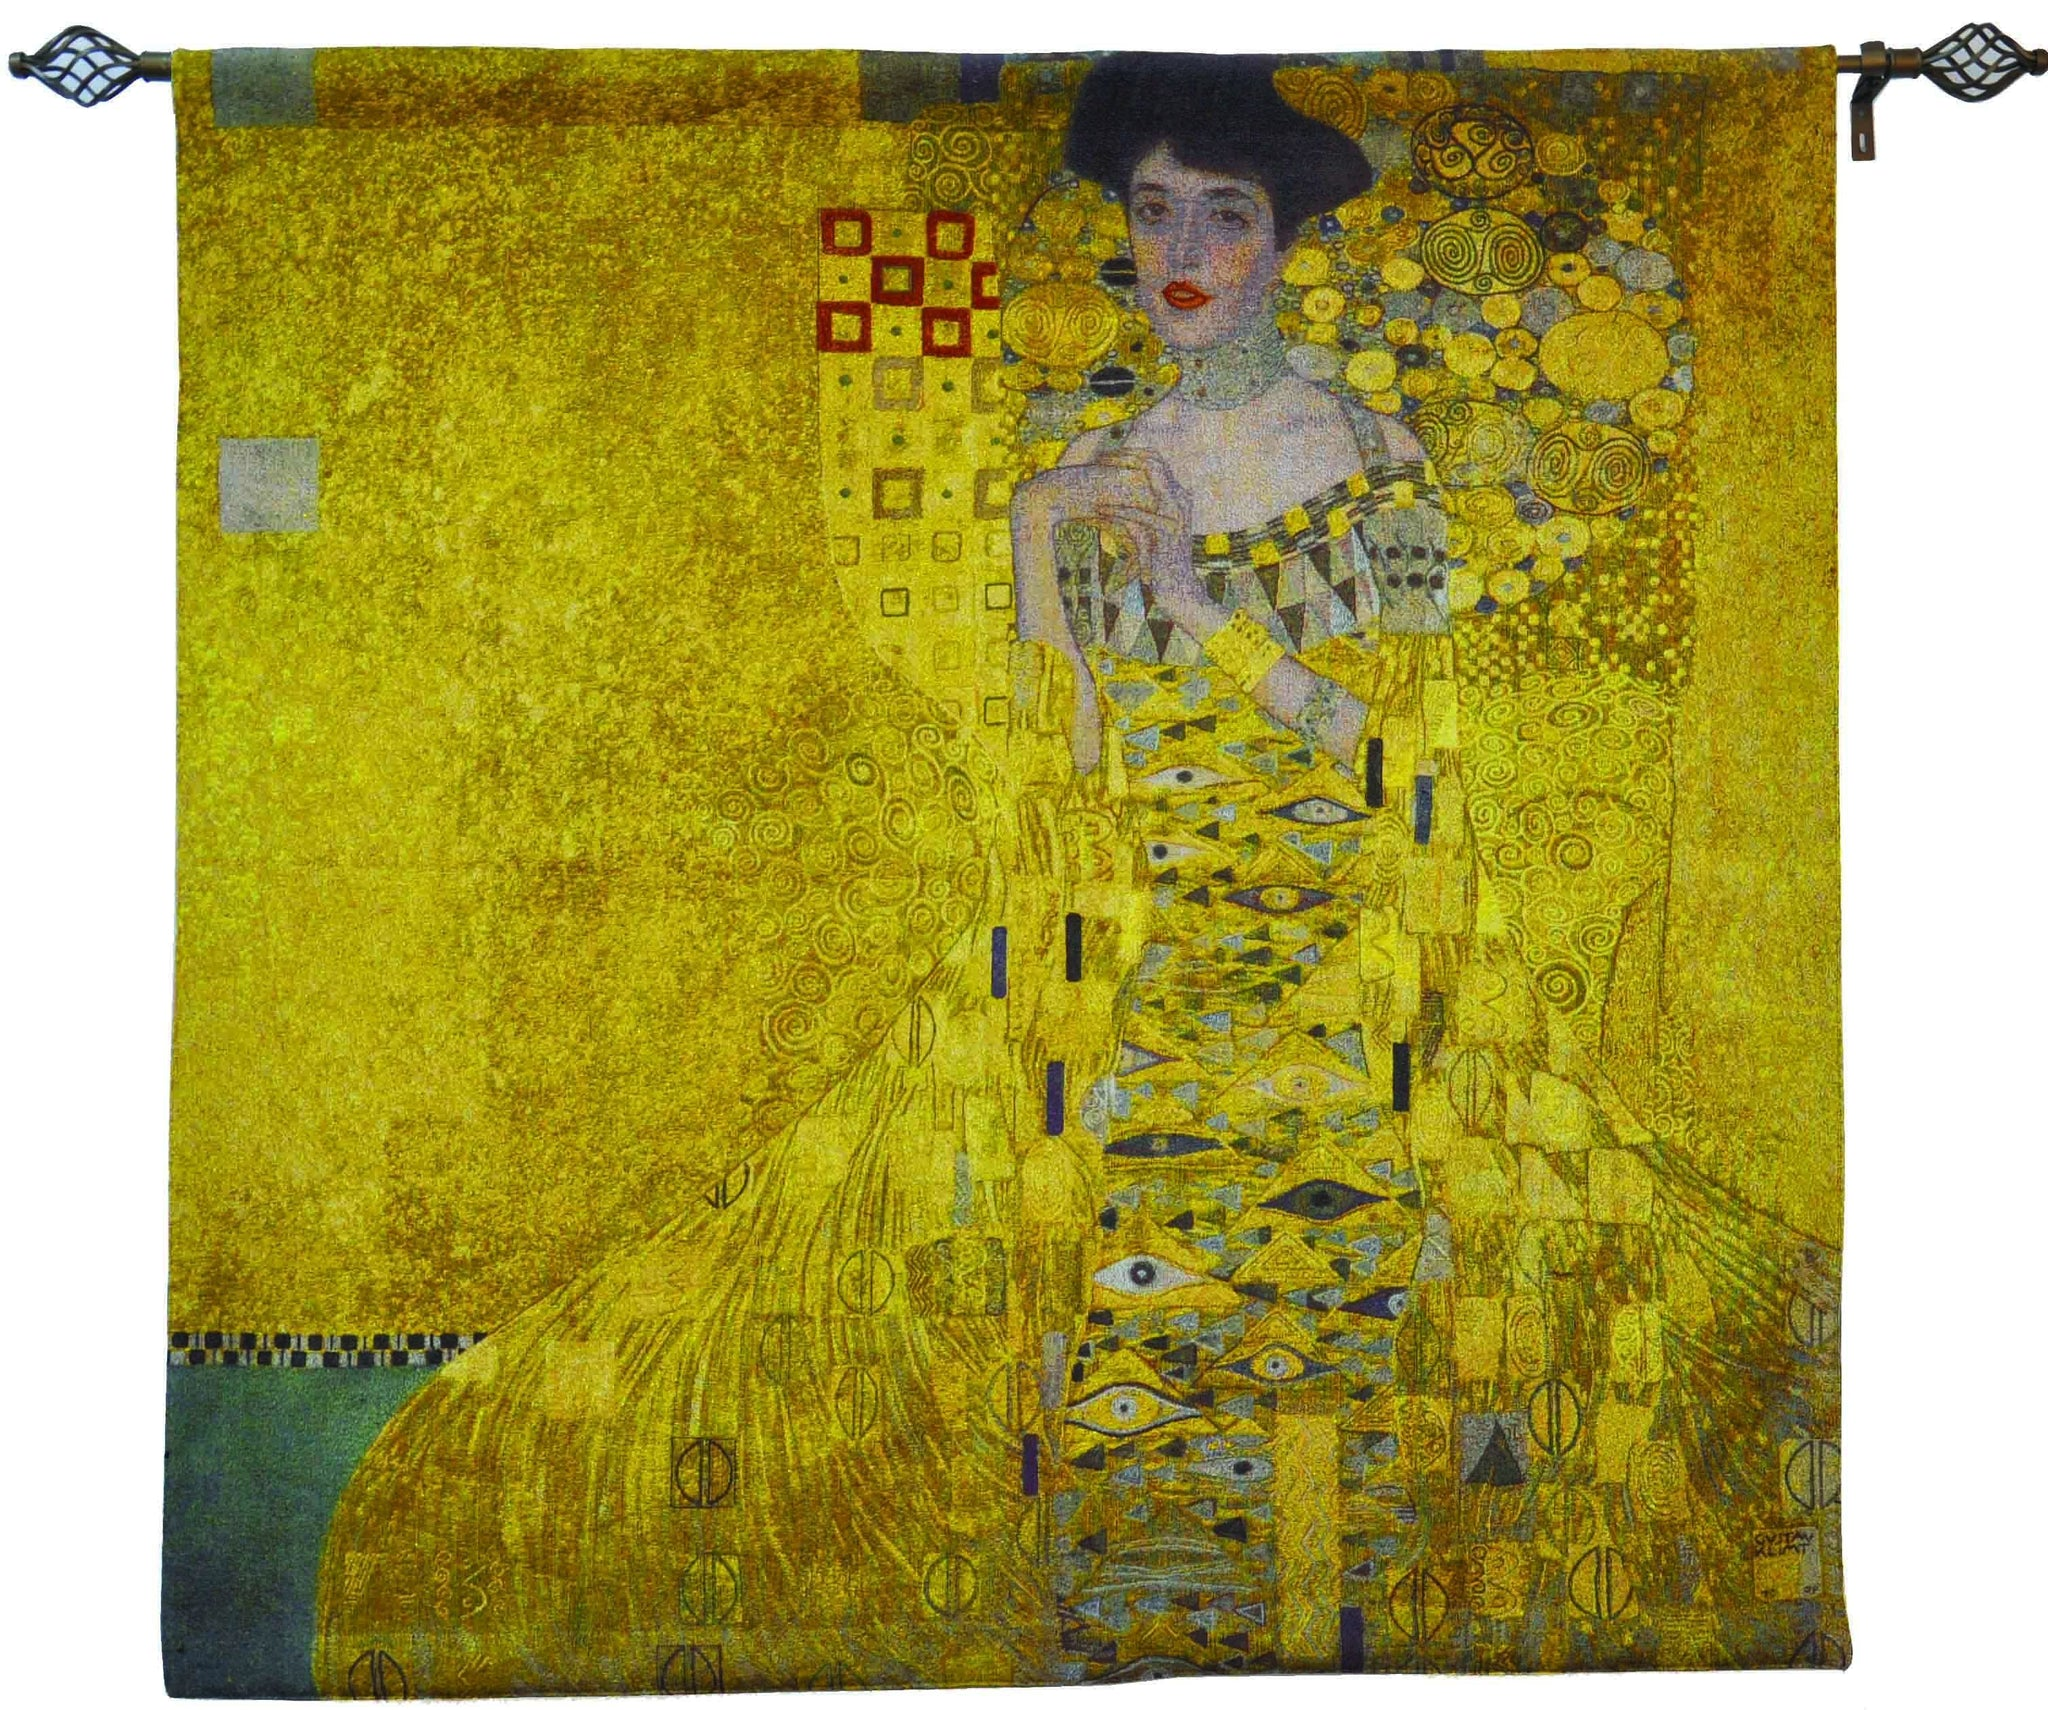 "WH-GK-WGD | GUSTAV KLIMT WOMAN IN GOLD 35 X 55 "" INCH WALL HANGING TAPESTRY ART - www.signareusa.com"